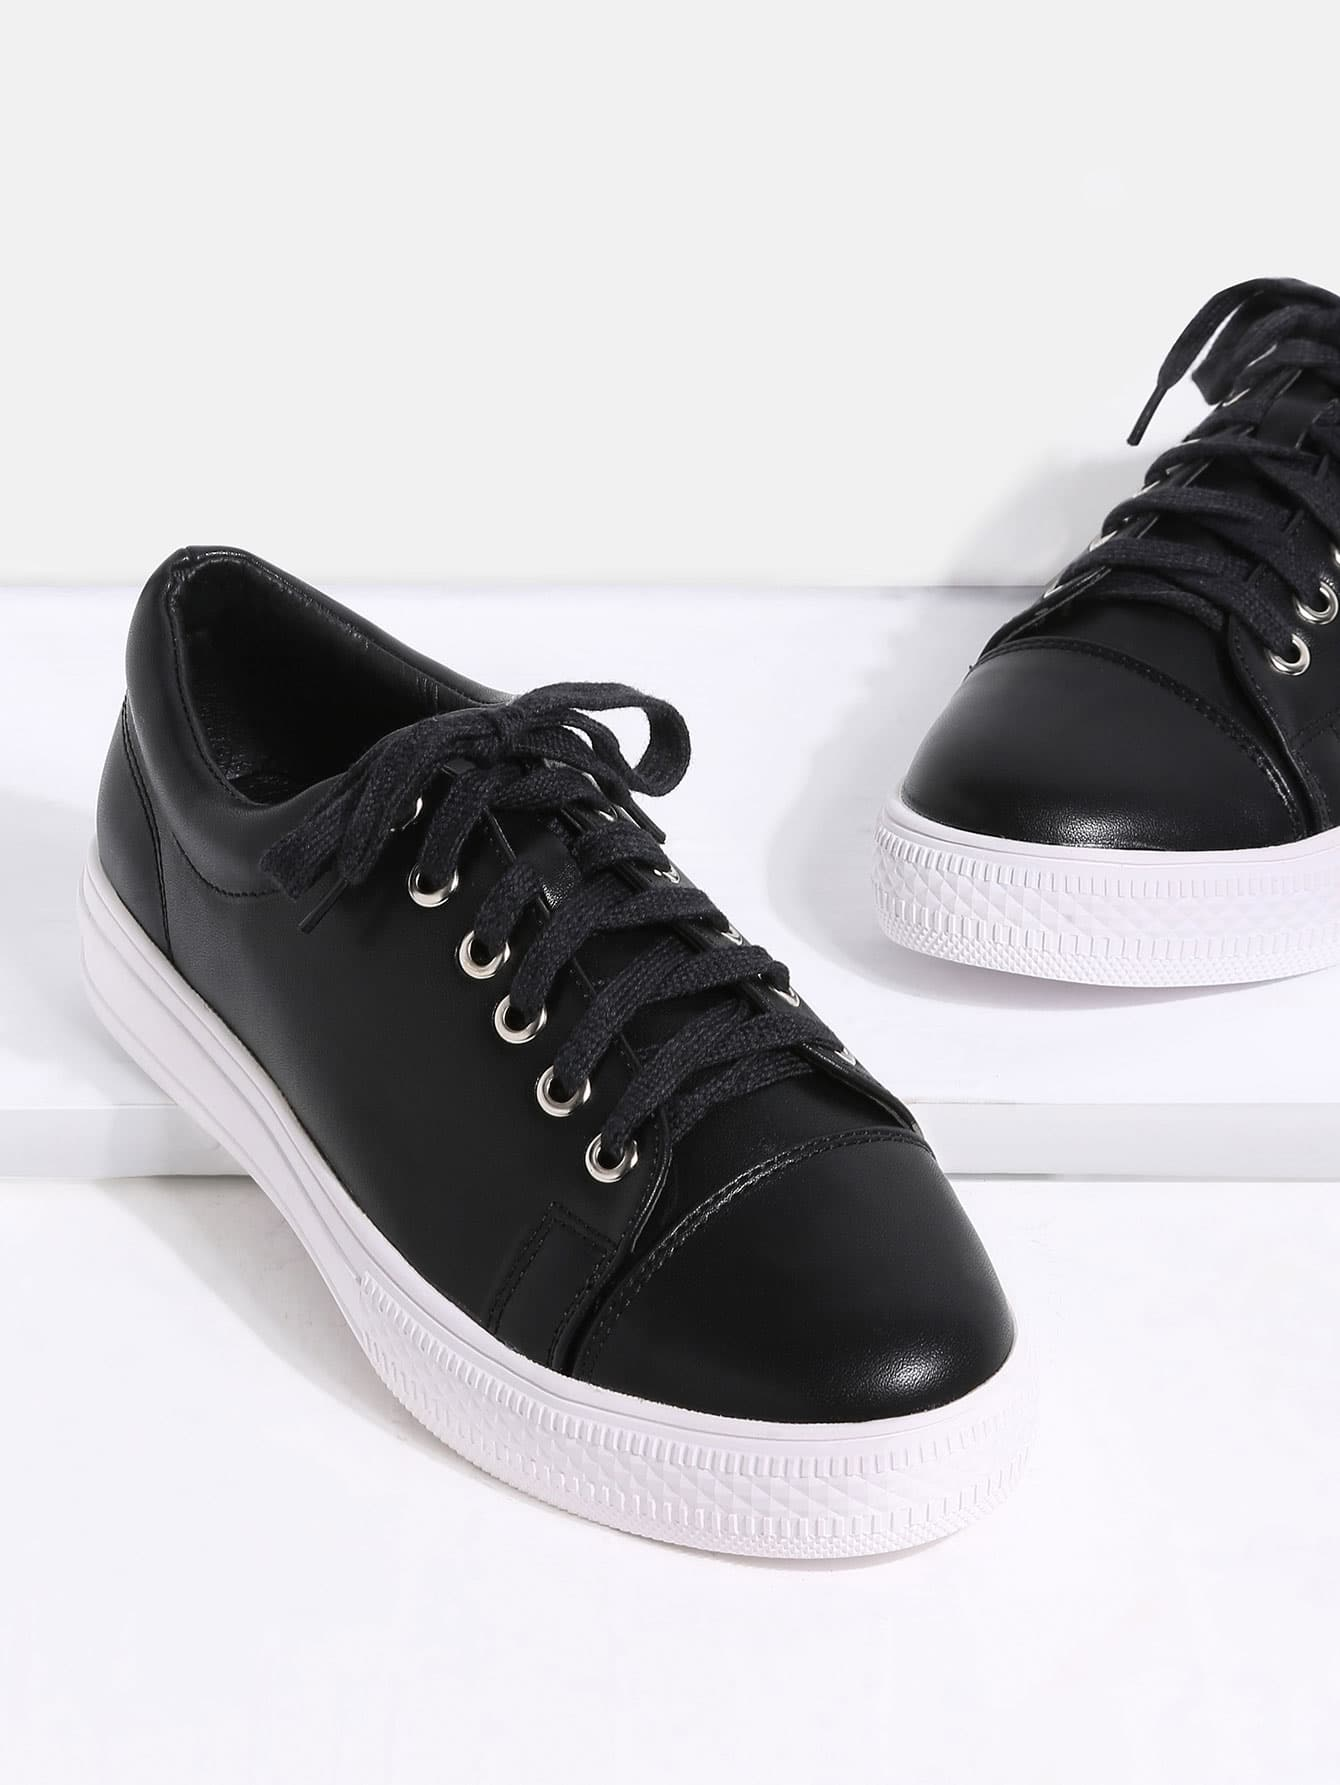 Image of Black Round Toe Lace Up Sneakers